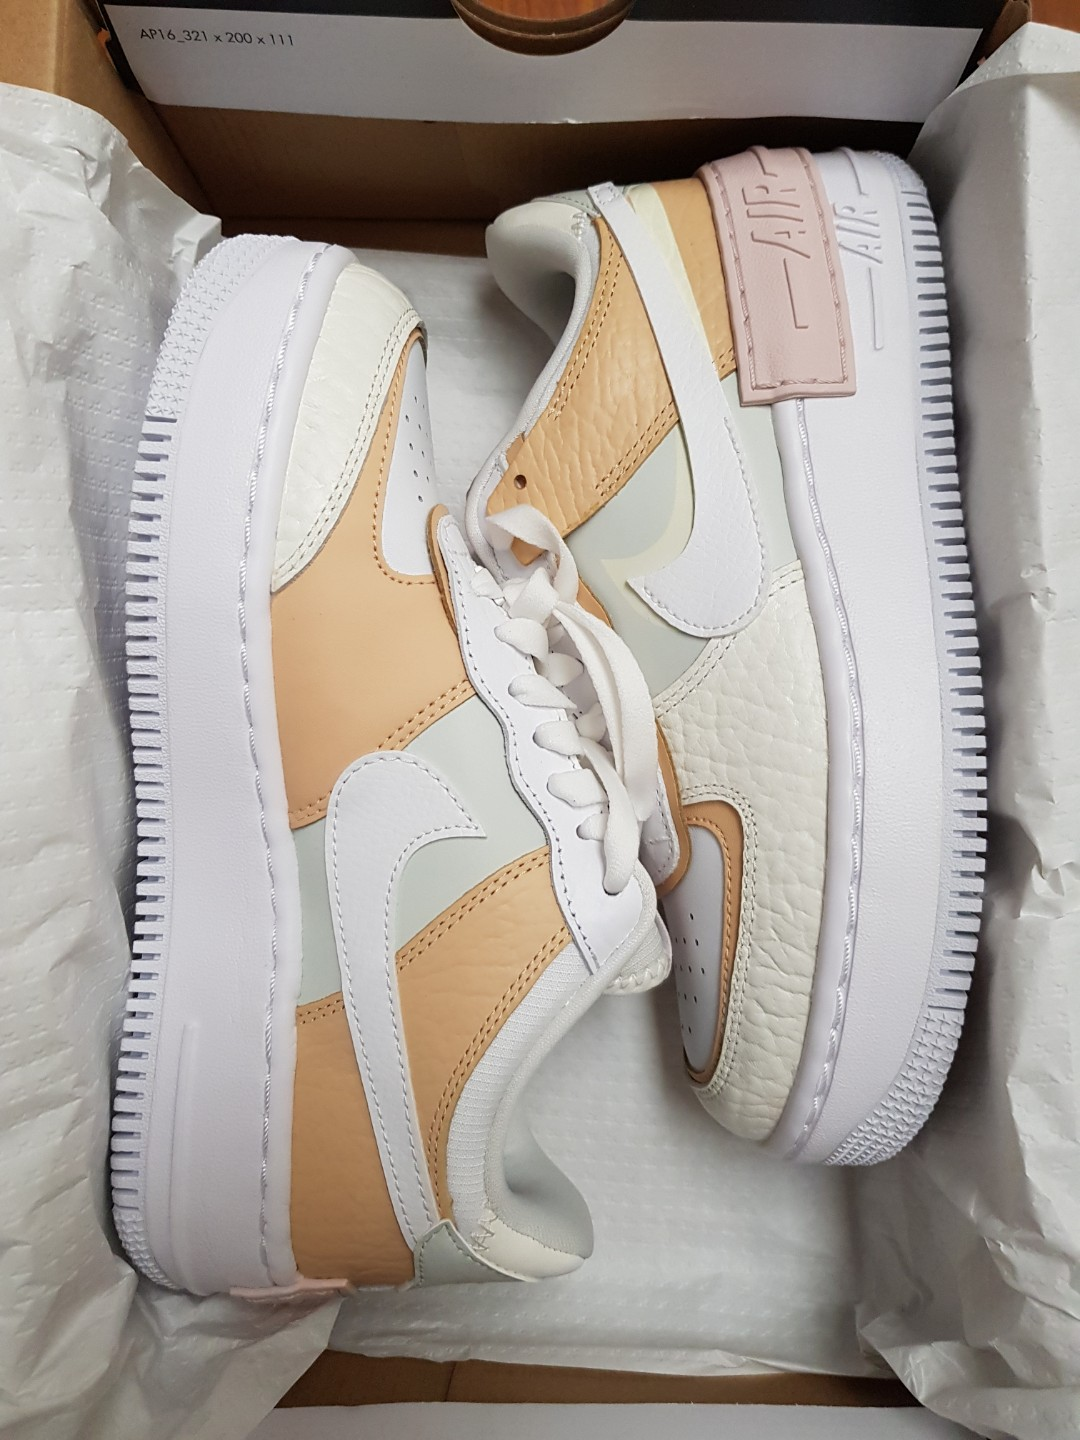 Nike Air Force 1 Shadow Se Spruce Aura Us 6 5 Men S Fashion Footwear Sneakers On Carousell How to tell real shoes like airforce ones from fakes. nike air force 1 shadow se spruce aura us 6 5